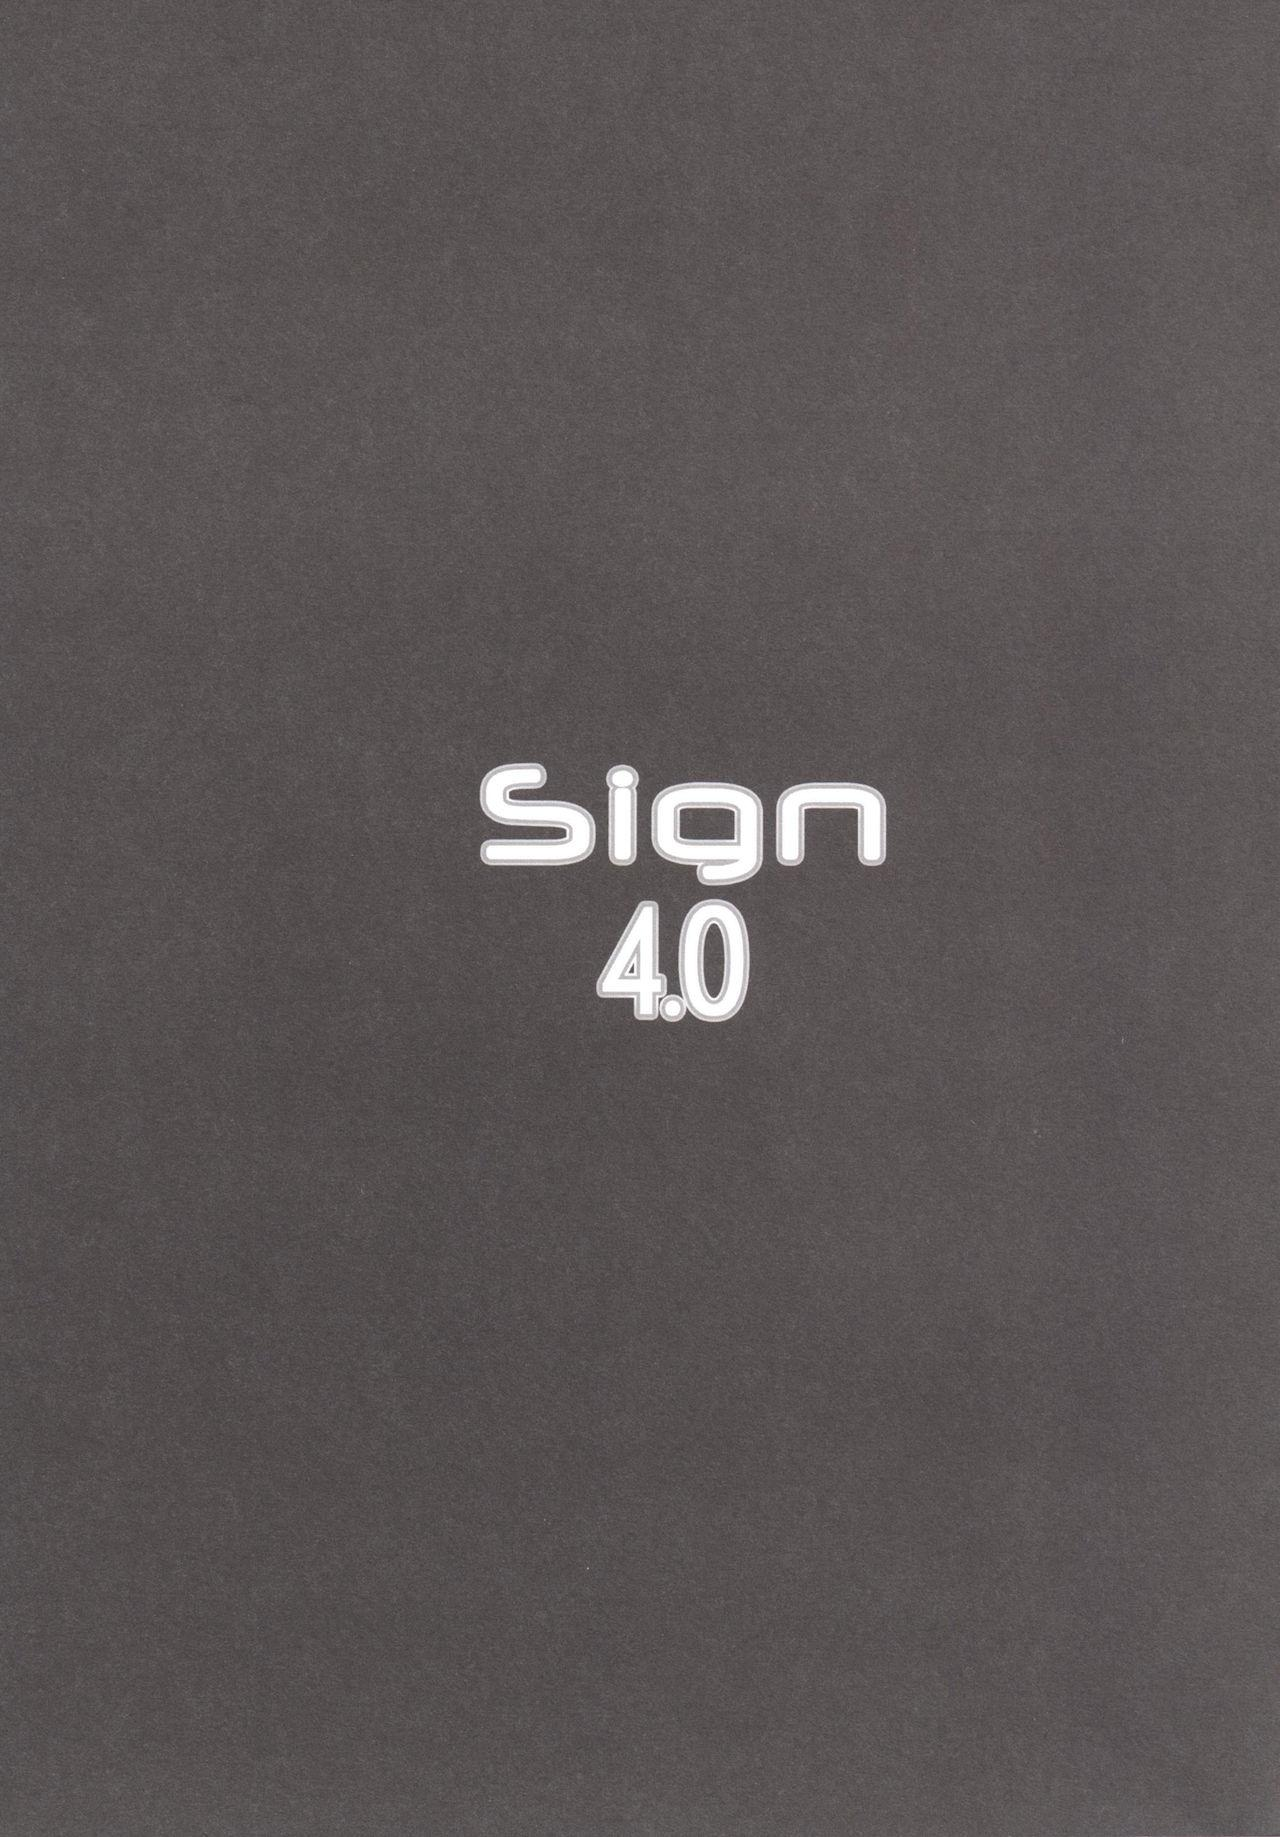 sign 4.0 2